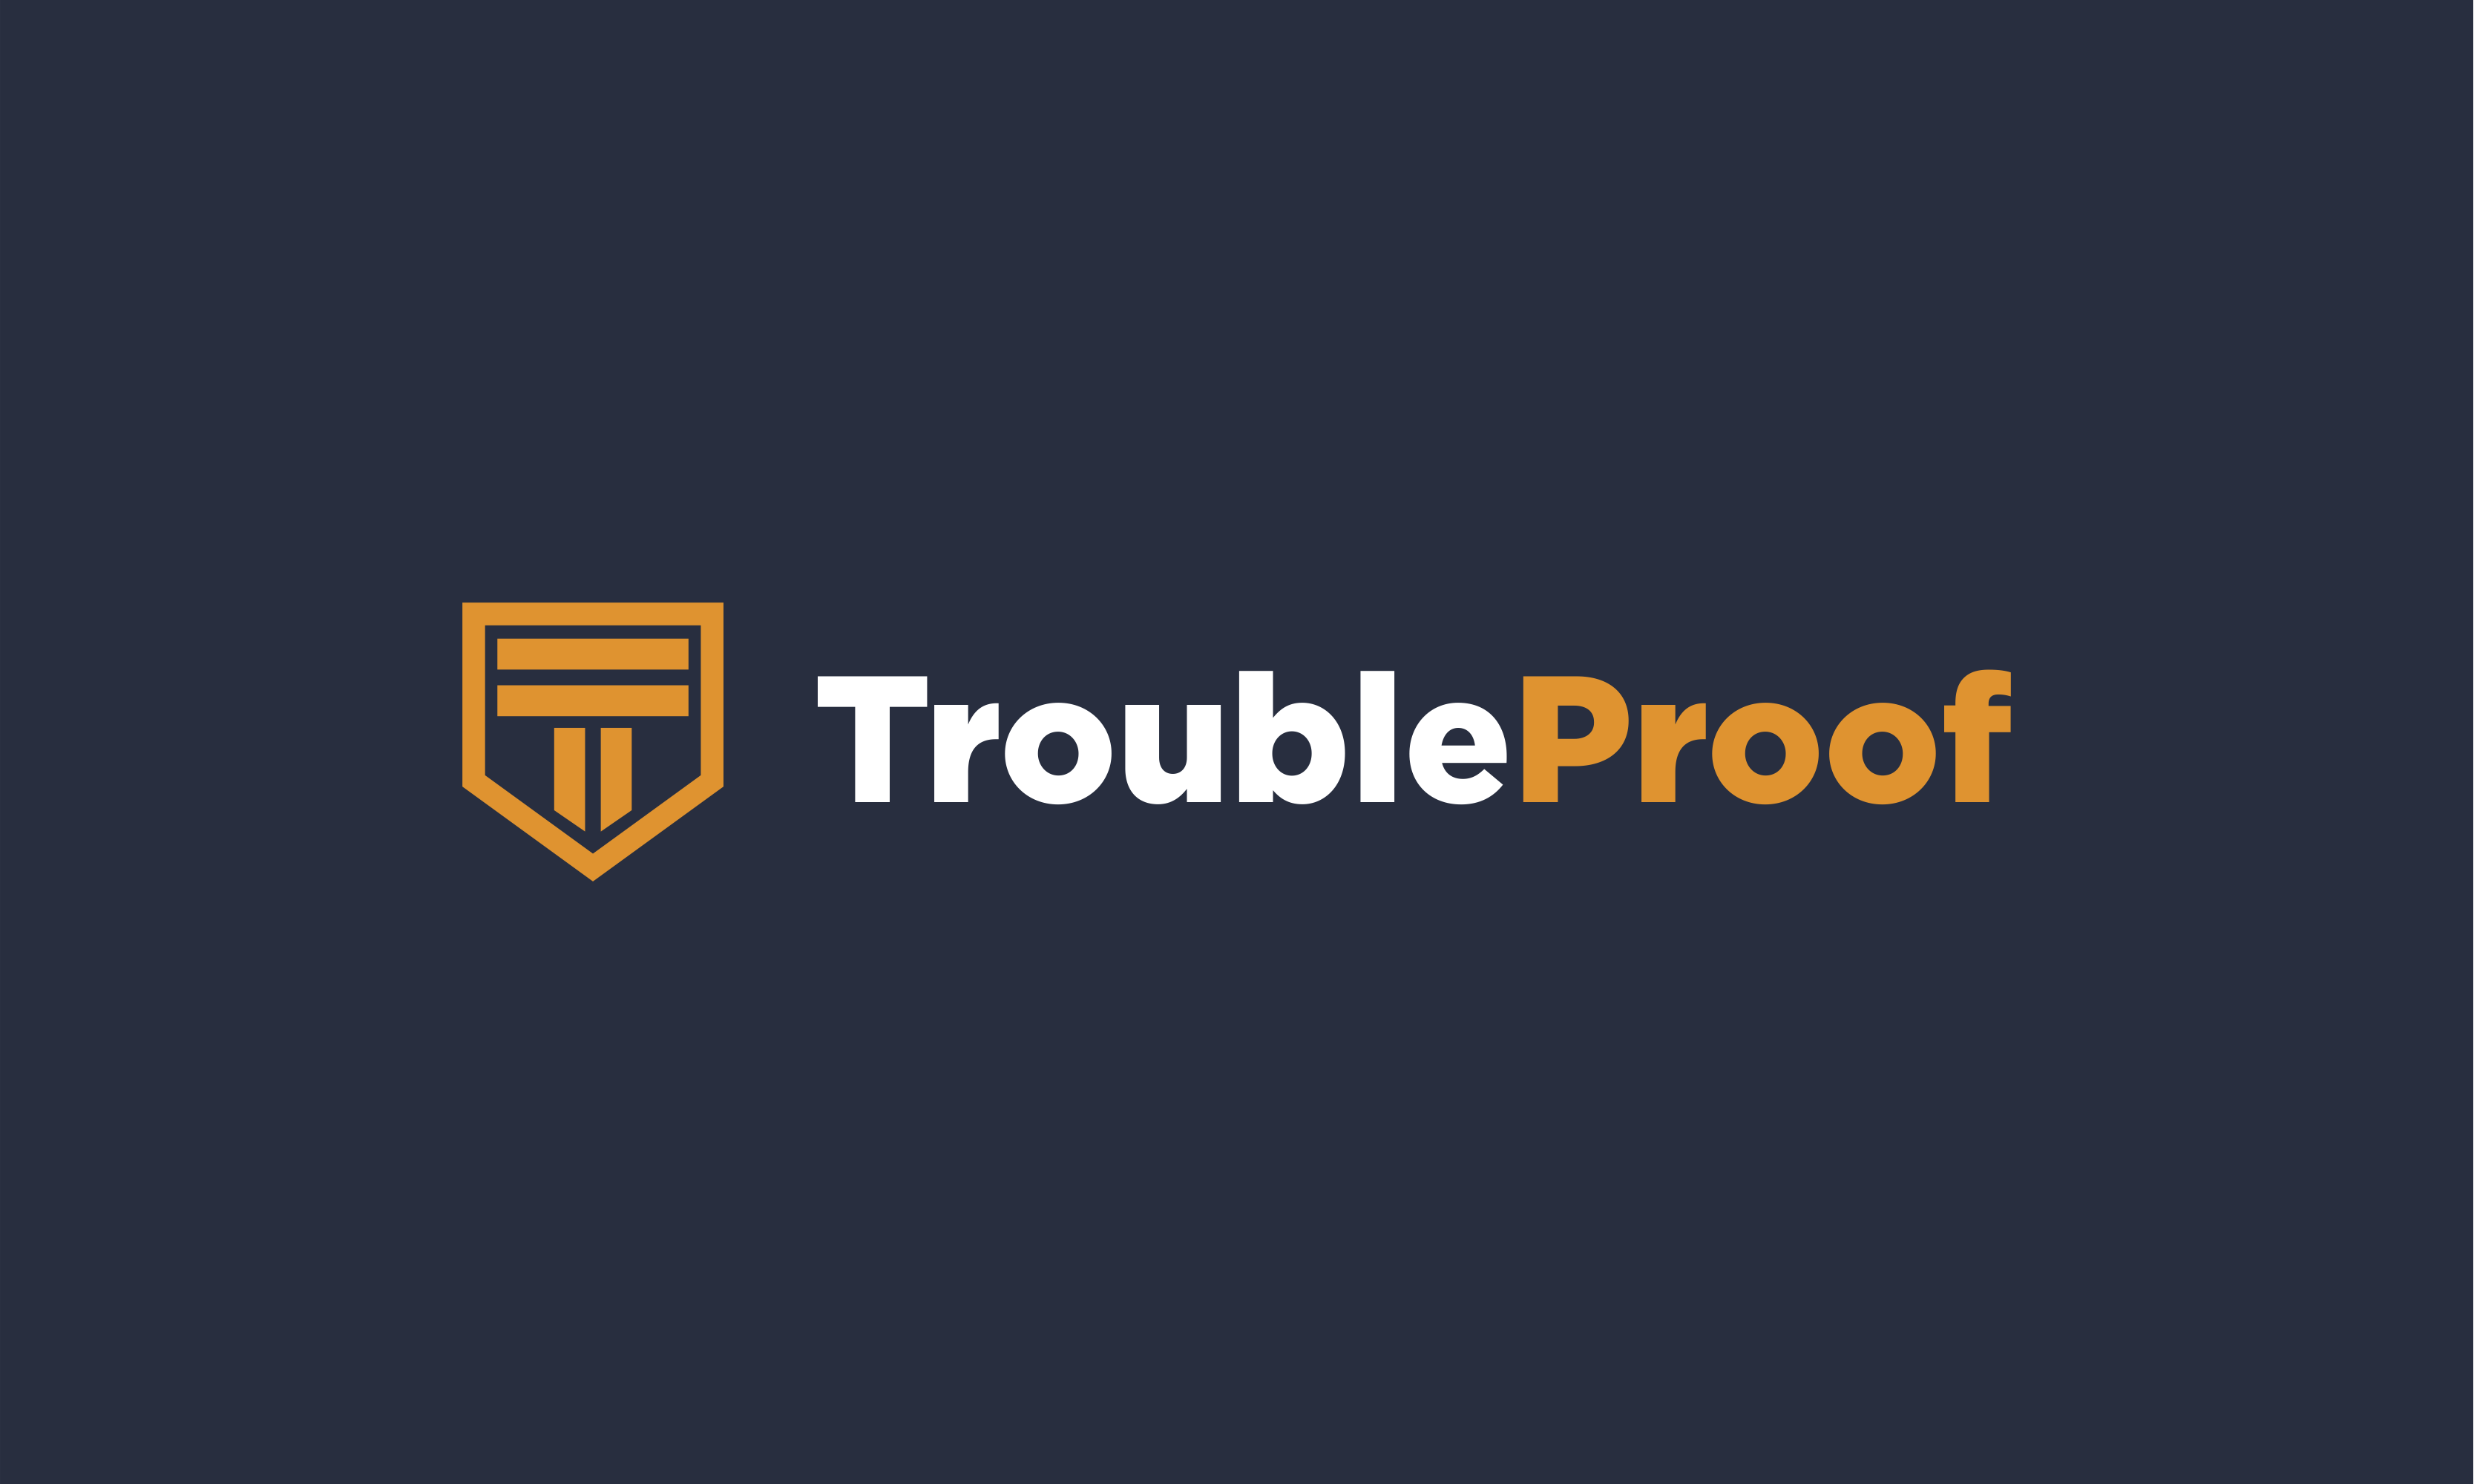 Troubleproof